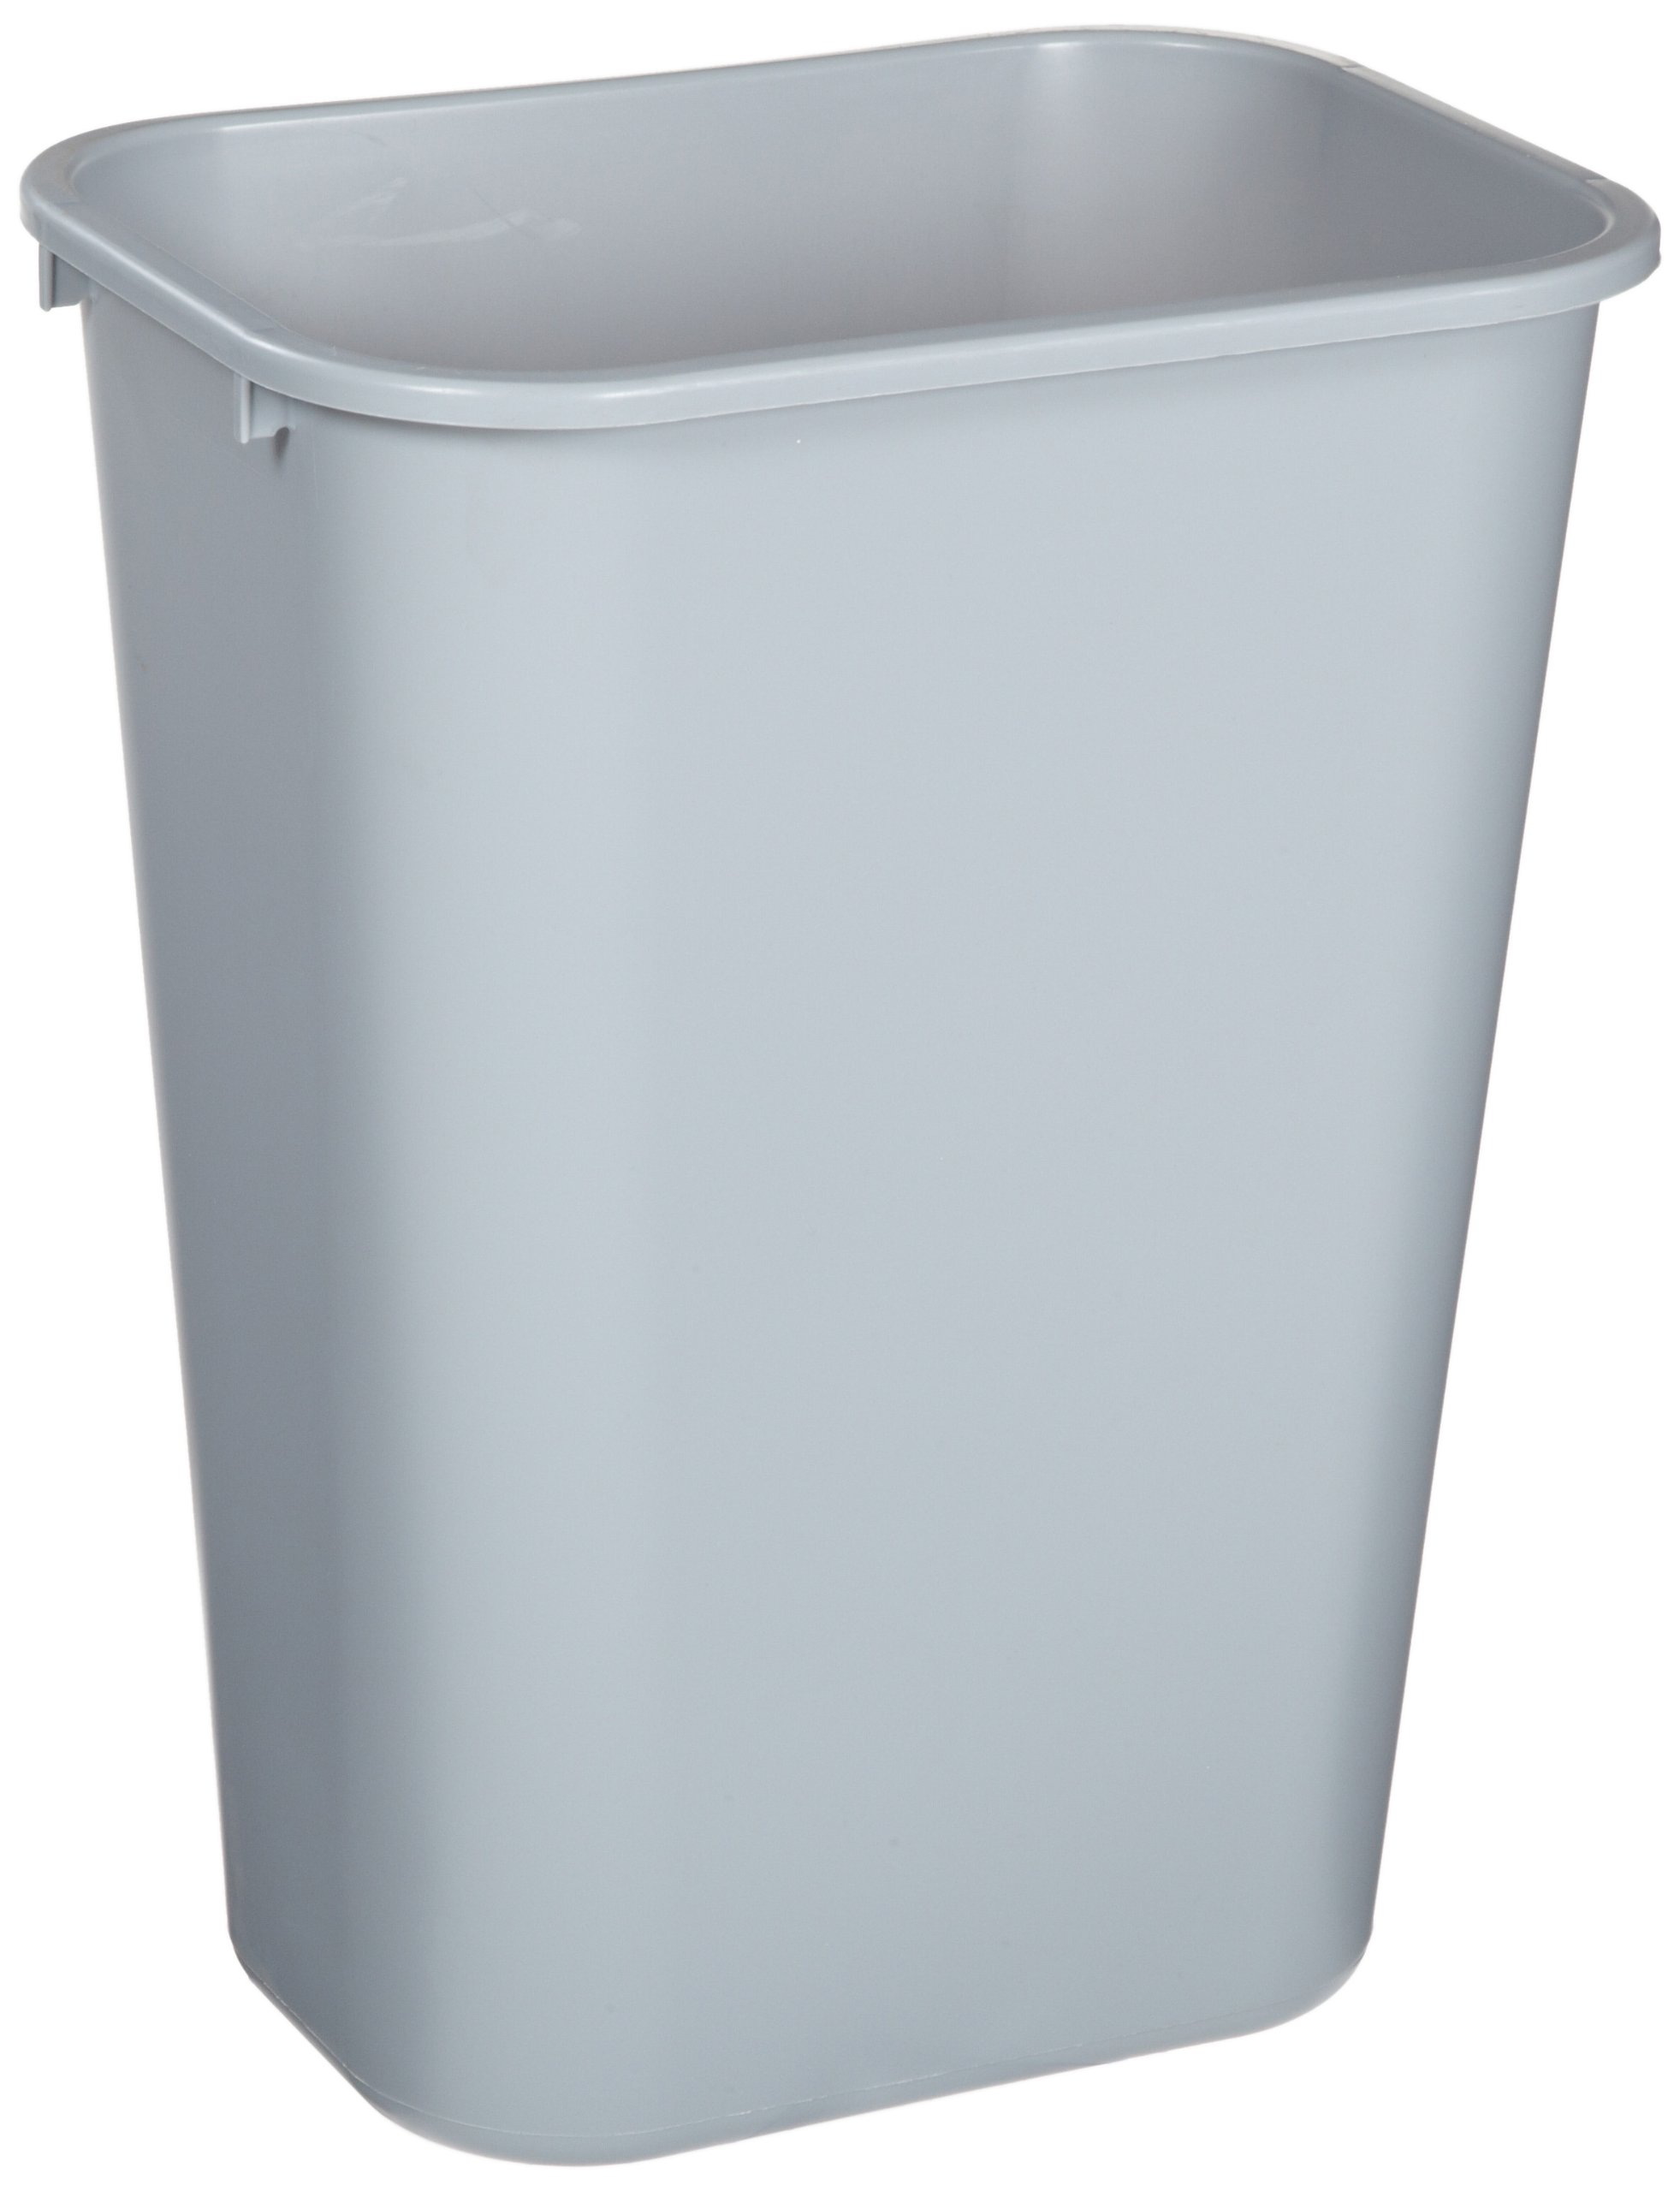 Rubbermaid Commercial Products FG295700GRAY Plastic Resin Deskside Wastebasket, 10 Gallon/41 Quart, Gray (Pack of 12)